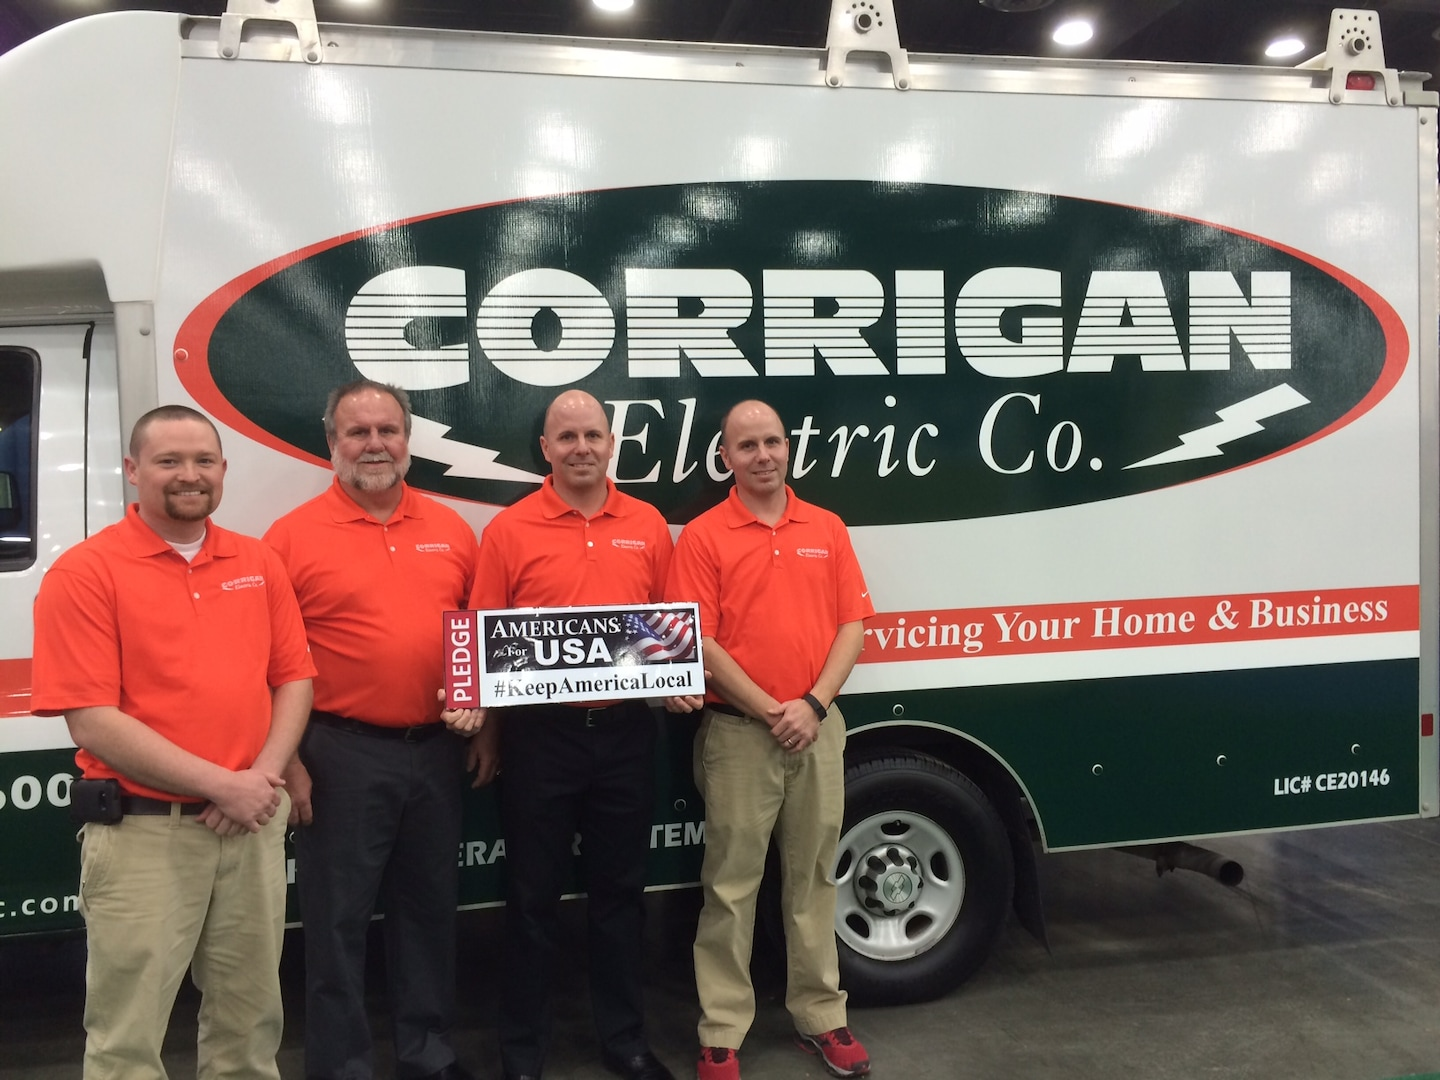 CORRIGAN Electric